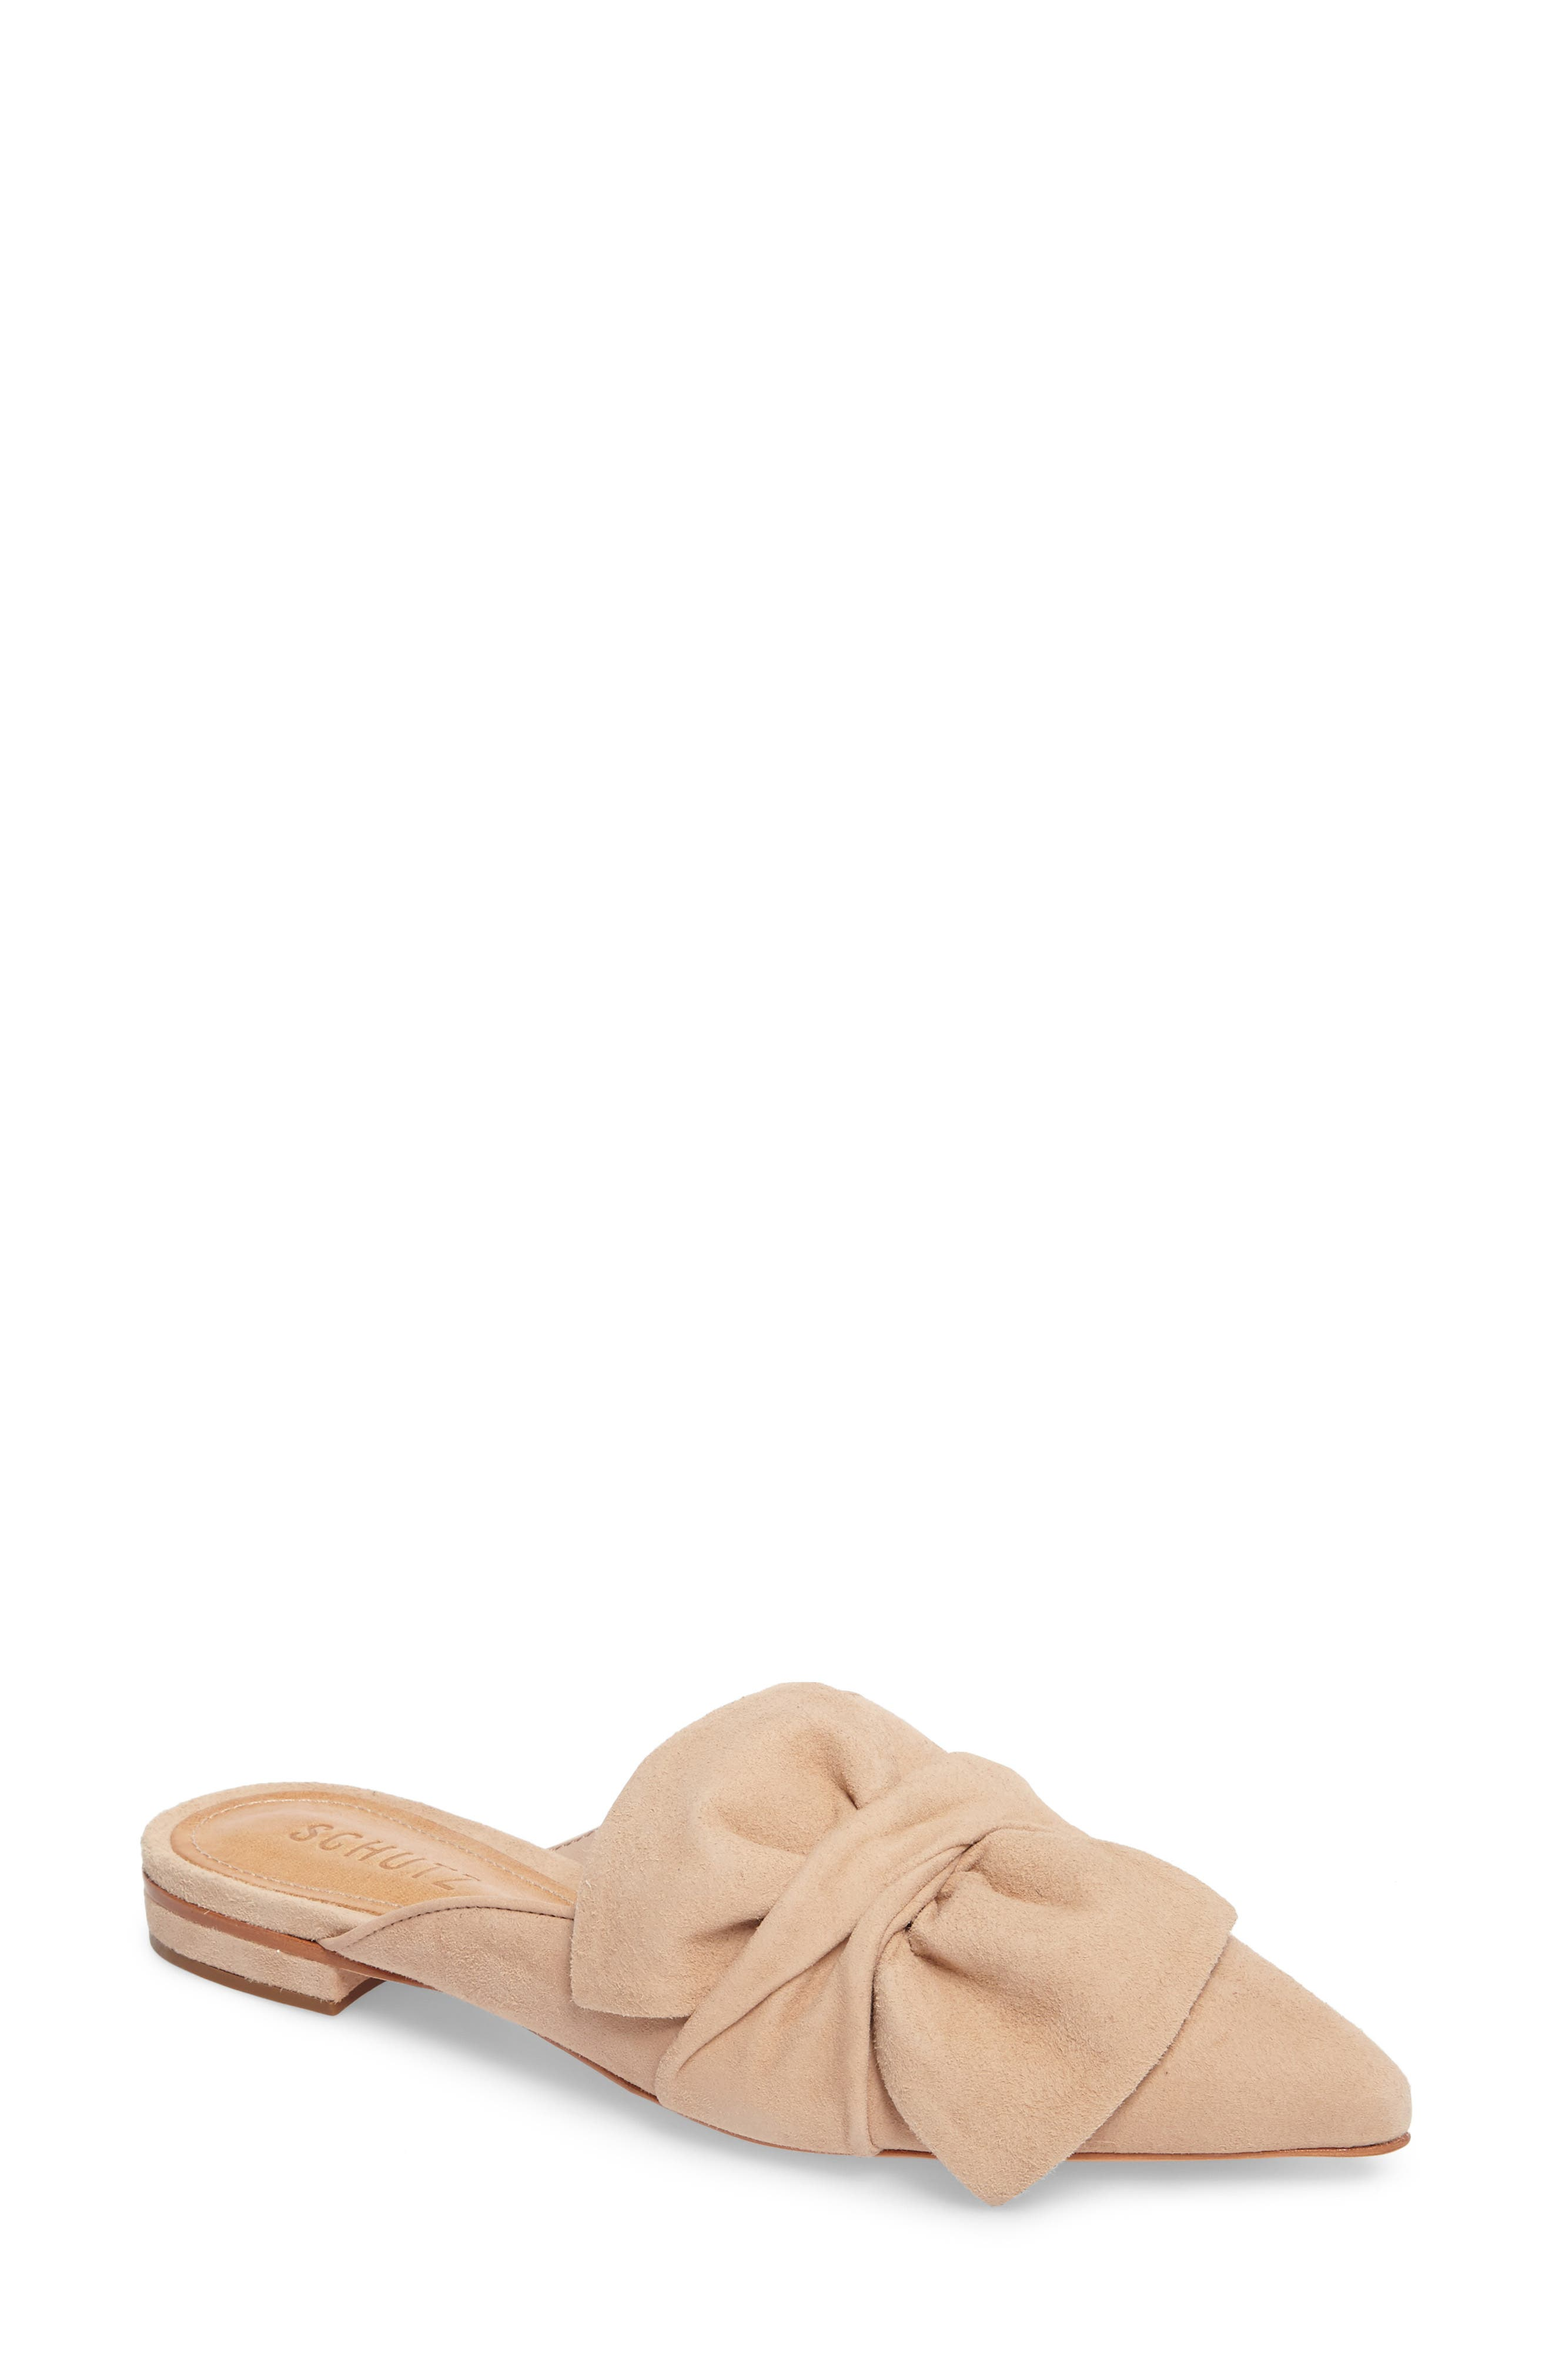 D'Ana Knotted Loafer Mule,                             Main thumbnail 1, color,                             Amendoa Nubuck Leather